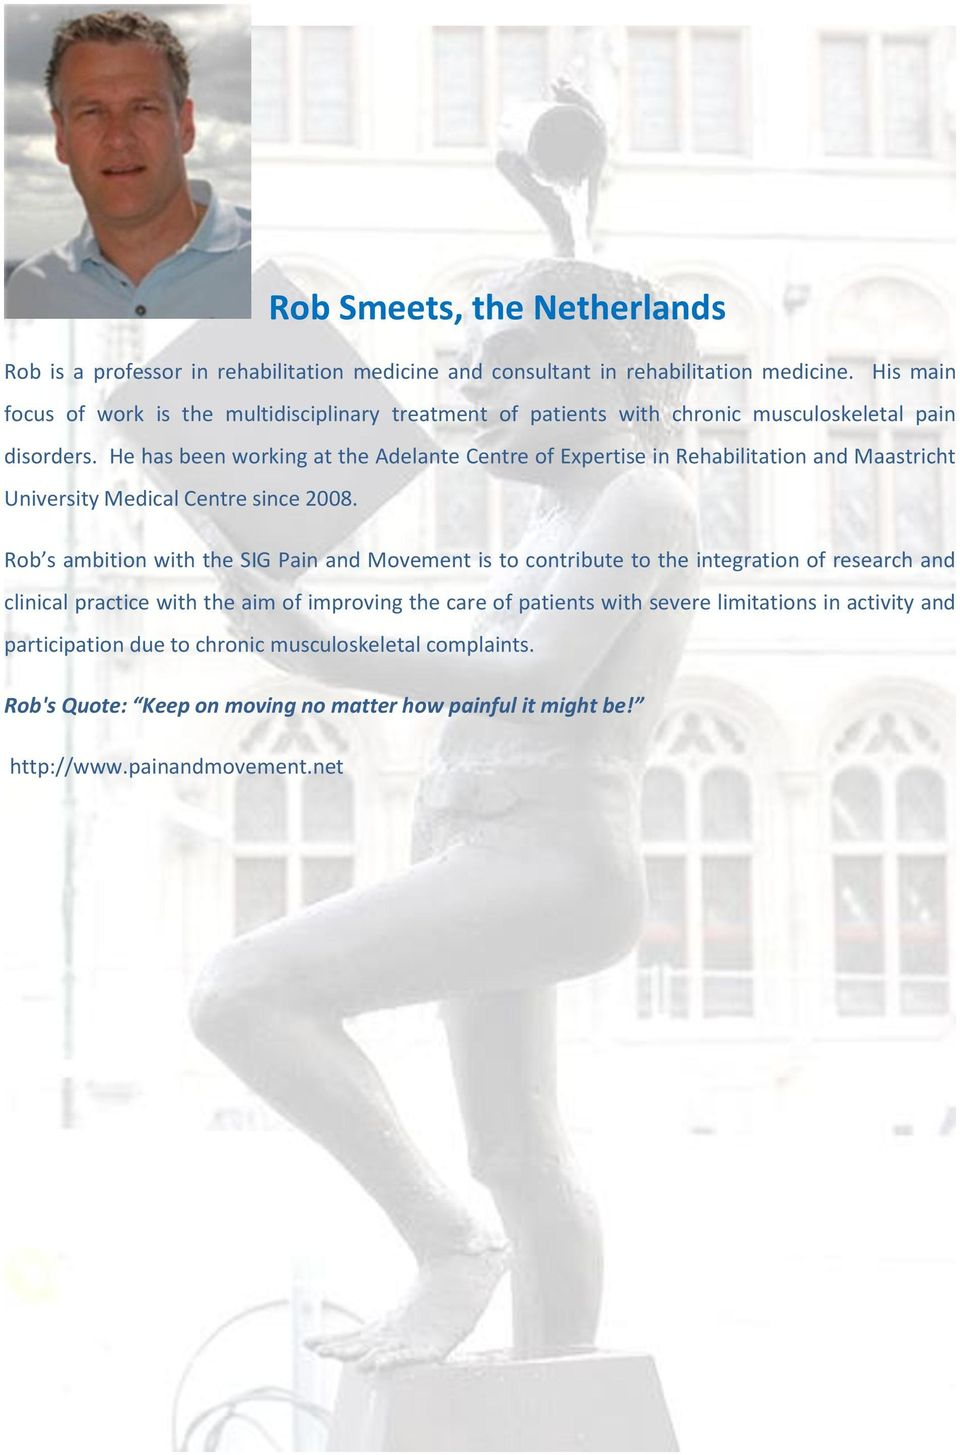 He has been working at the Adelante Centre of Expertise in Rehabilitation and Maastricht University Medical Centre since 2008.